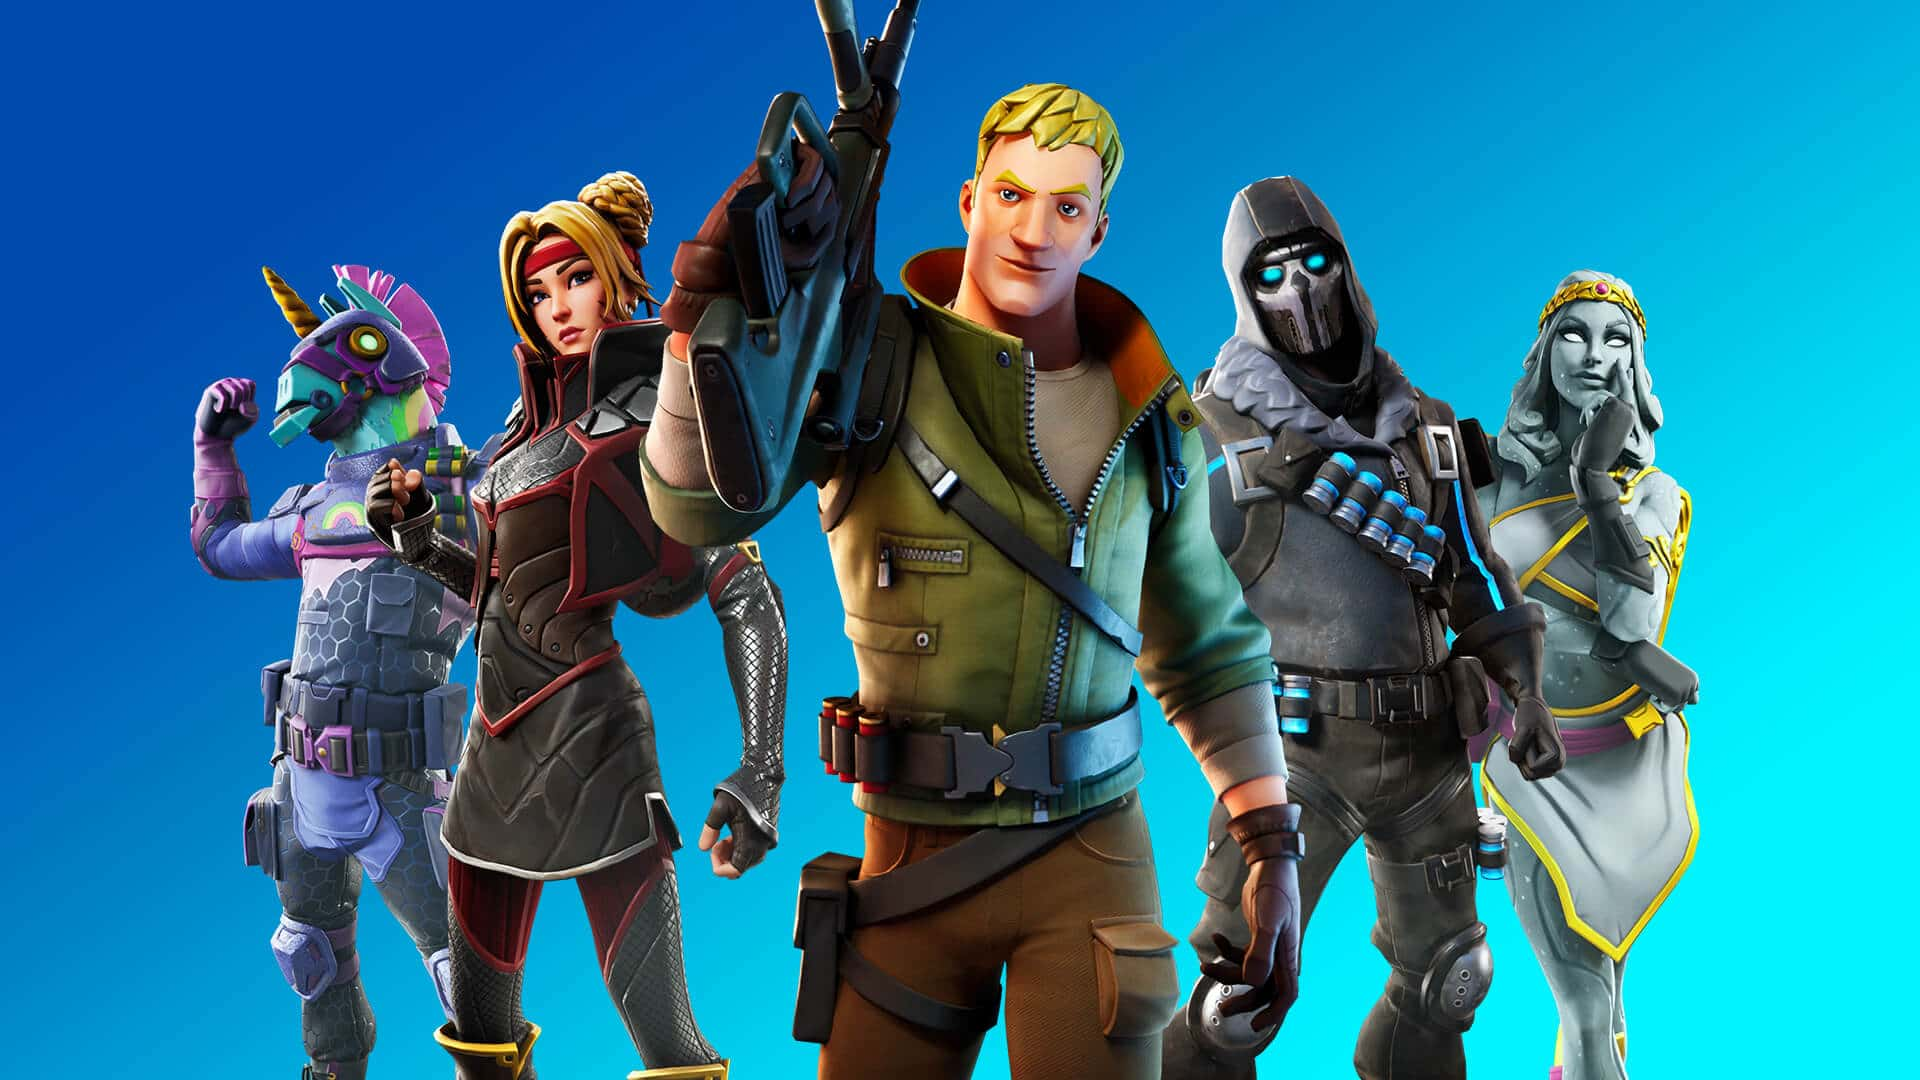 Fortnite: Battle Royale gets a new Season 2 start date